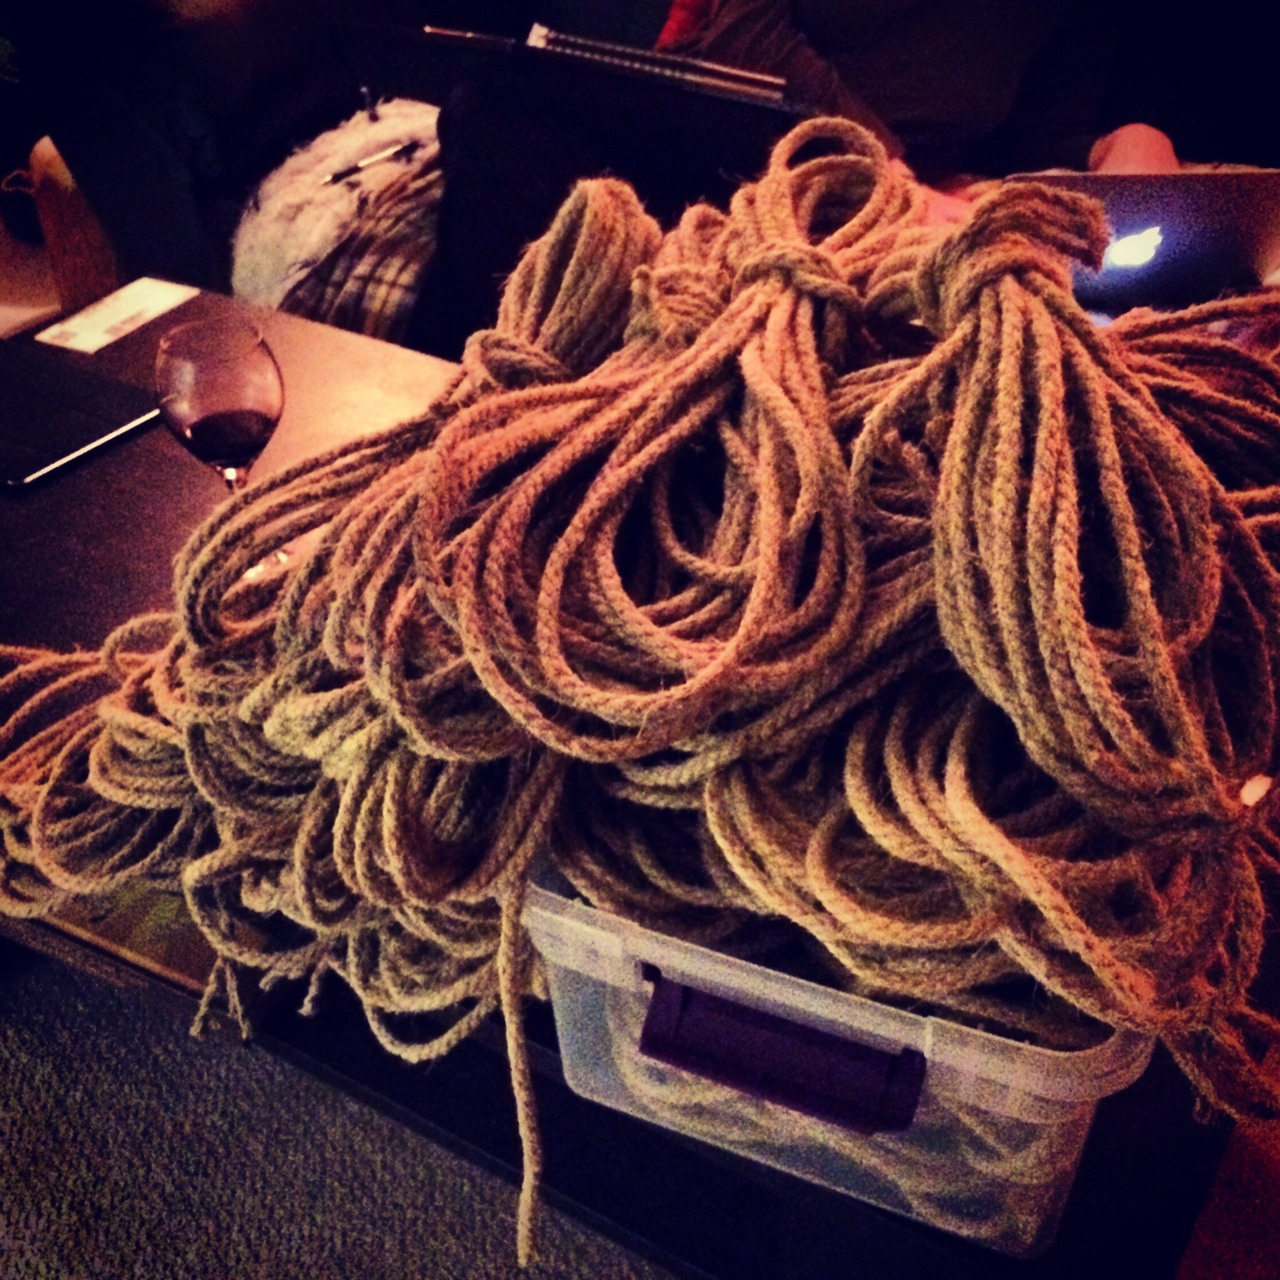 abmann :     Broke something like 600 feet of rope last night.  That's the last of the 30s to break. Now to dye them.   Still need to cut 108 15ft bundles to process but let's get the 30s done first.   Then maybe take a weekend off?  Hah, no. I enjoy this too much. Shibari rope for everyone!   (The wine was a 2011 Argentine Malbec.)